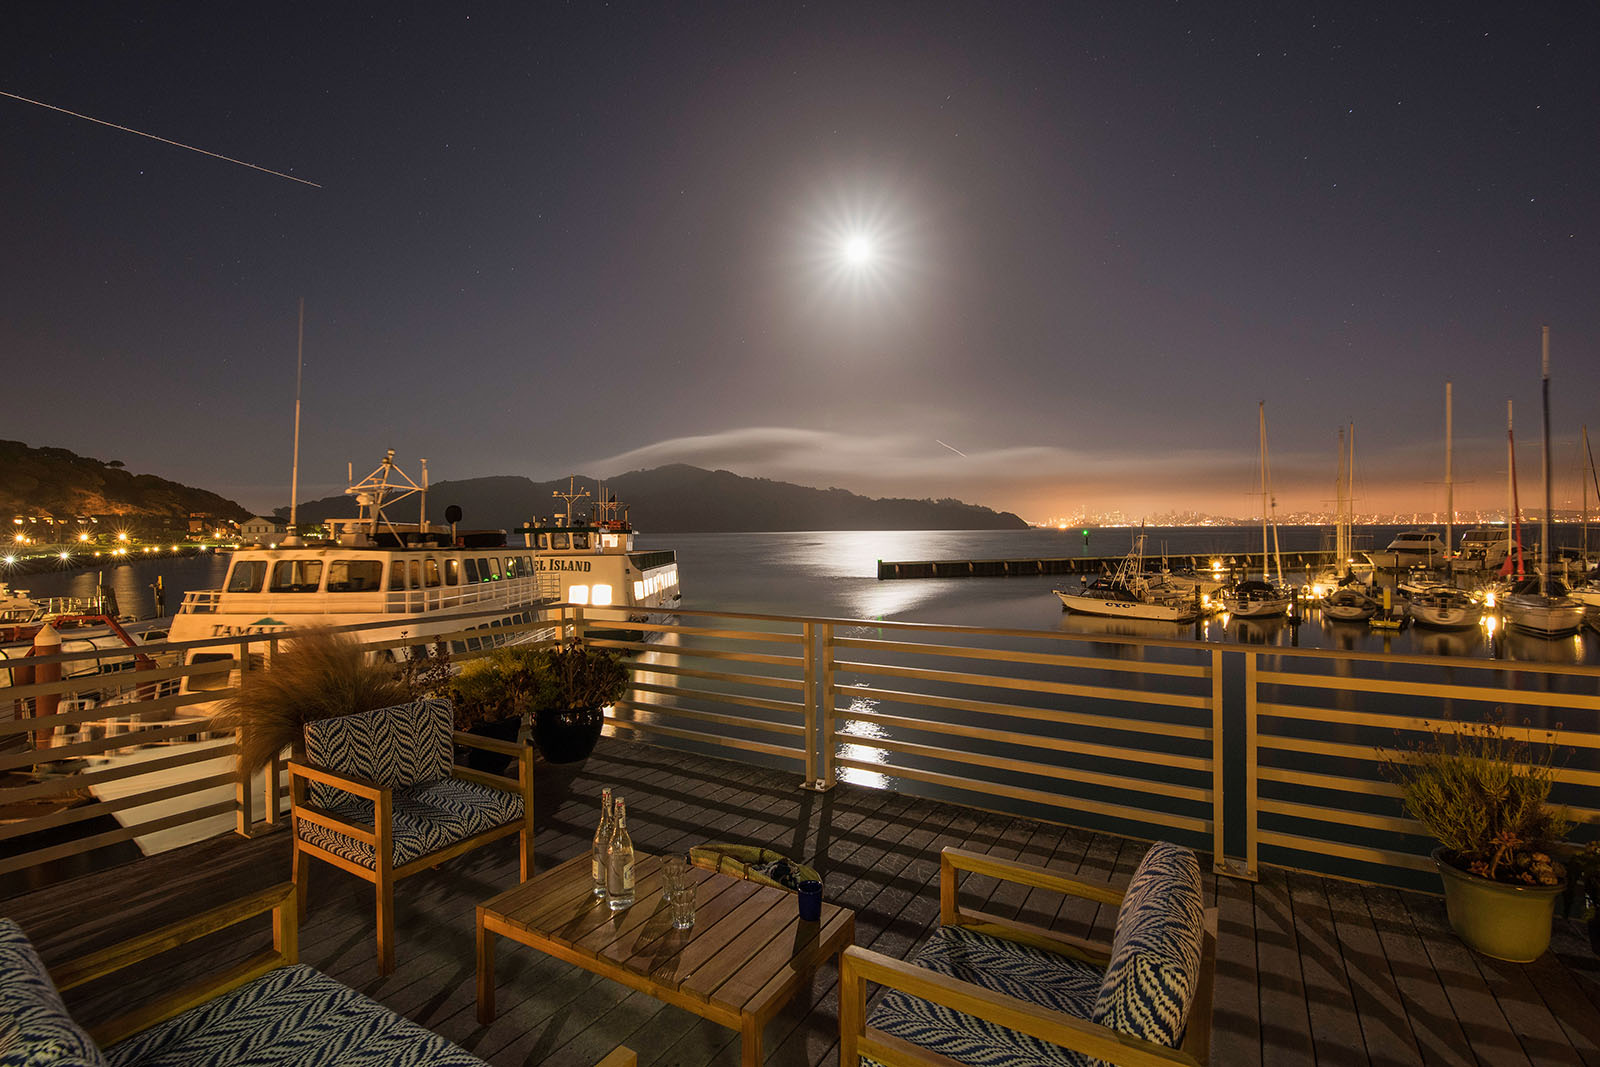 Settle in and enjoy the full moon from the deck at Waters Edge Hotel